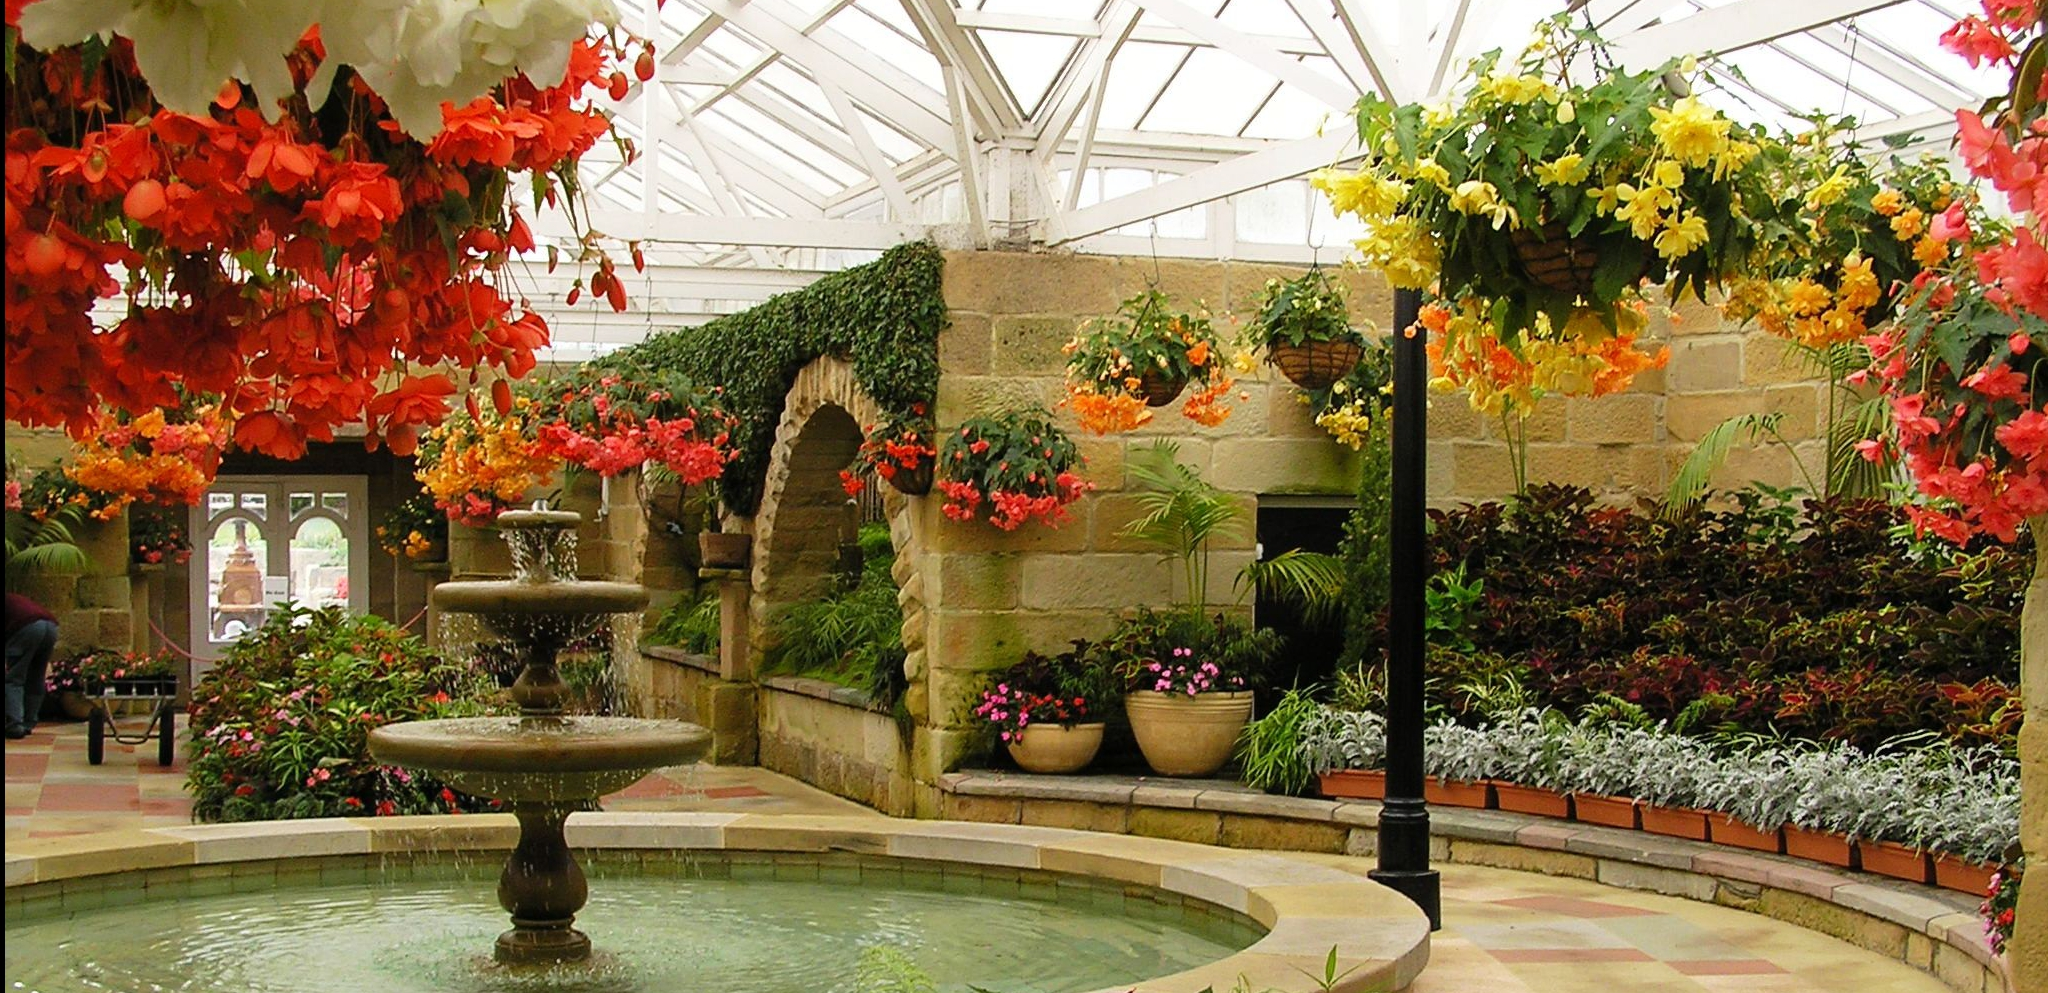 botanical gardens conservatory with orange tuberous Begonia's in hanging baskets